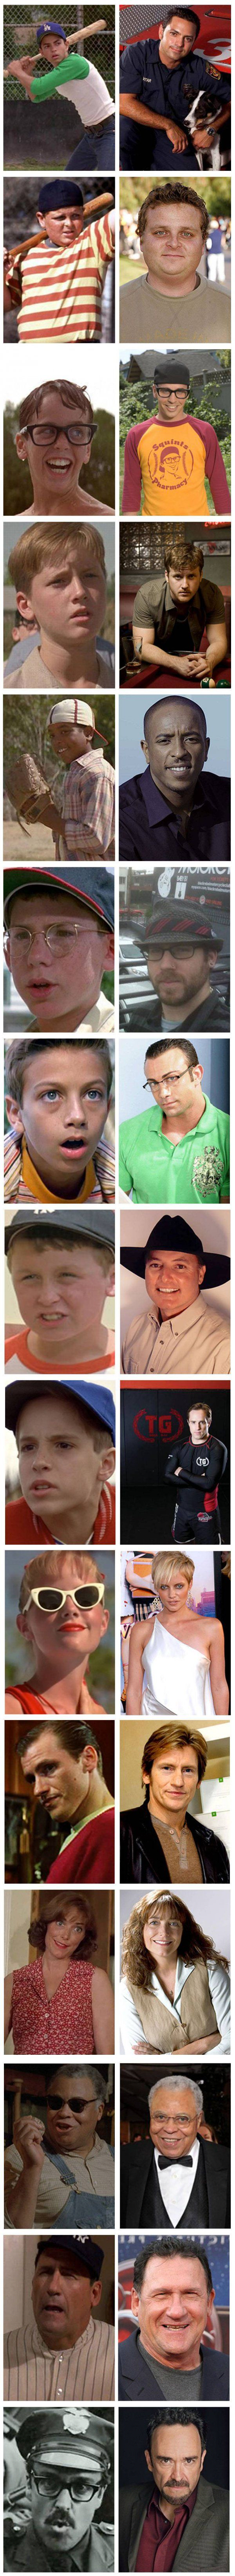 It will always be one of my all time favorite movies!!  The Sandlot - Then and Now